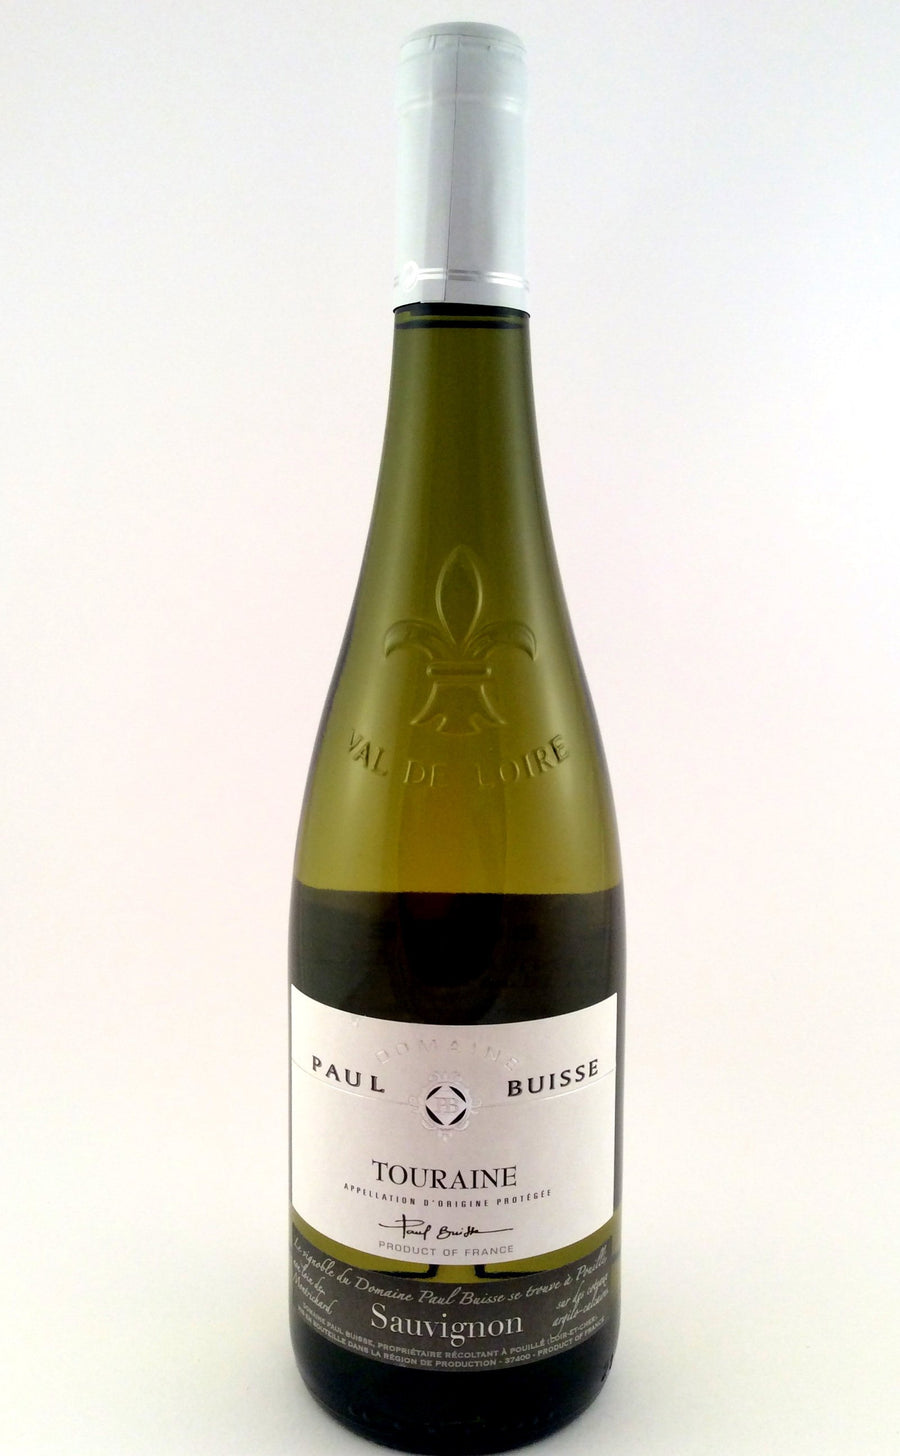 Paul Buisse Touraine Sauvignon Blanc-Wineseeker